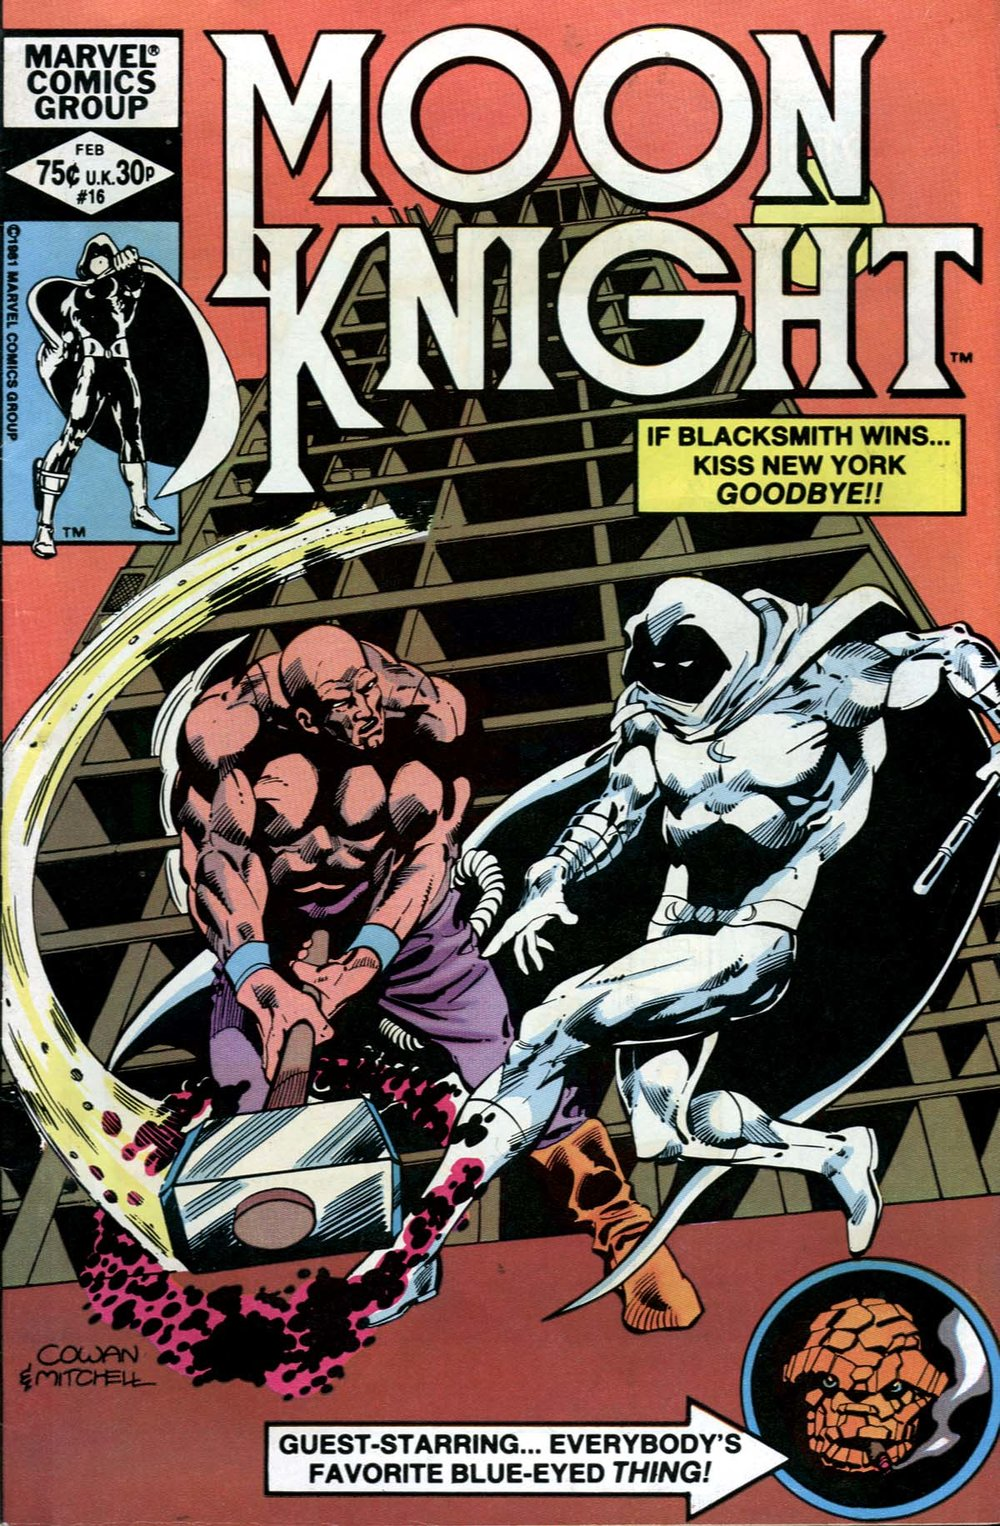 Moon Knight (1980) #16, cover penciled by Denys Cowan & inked by Steve Mitchell.